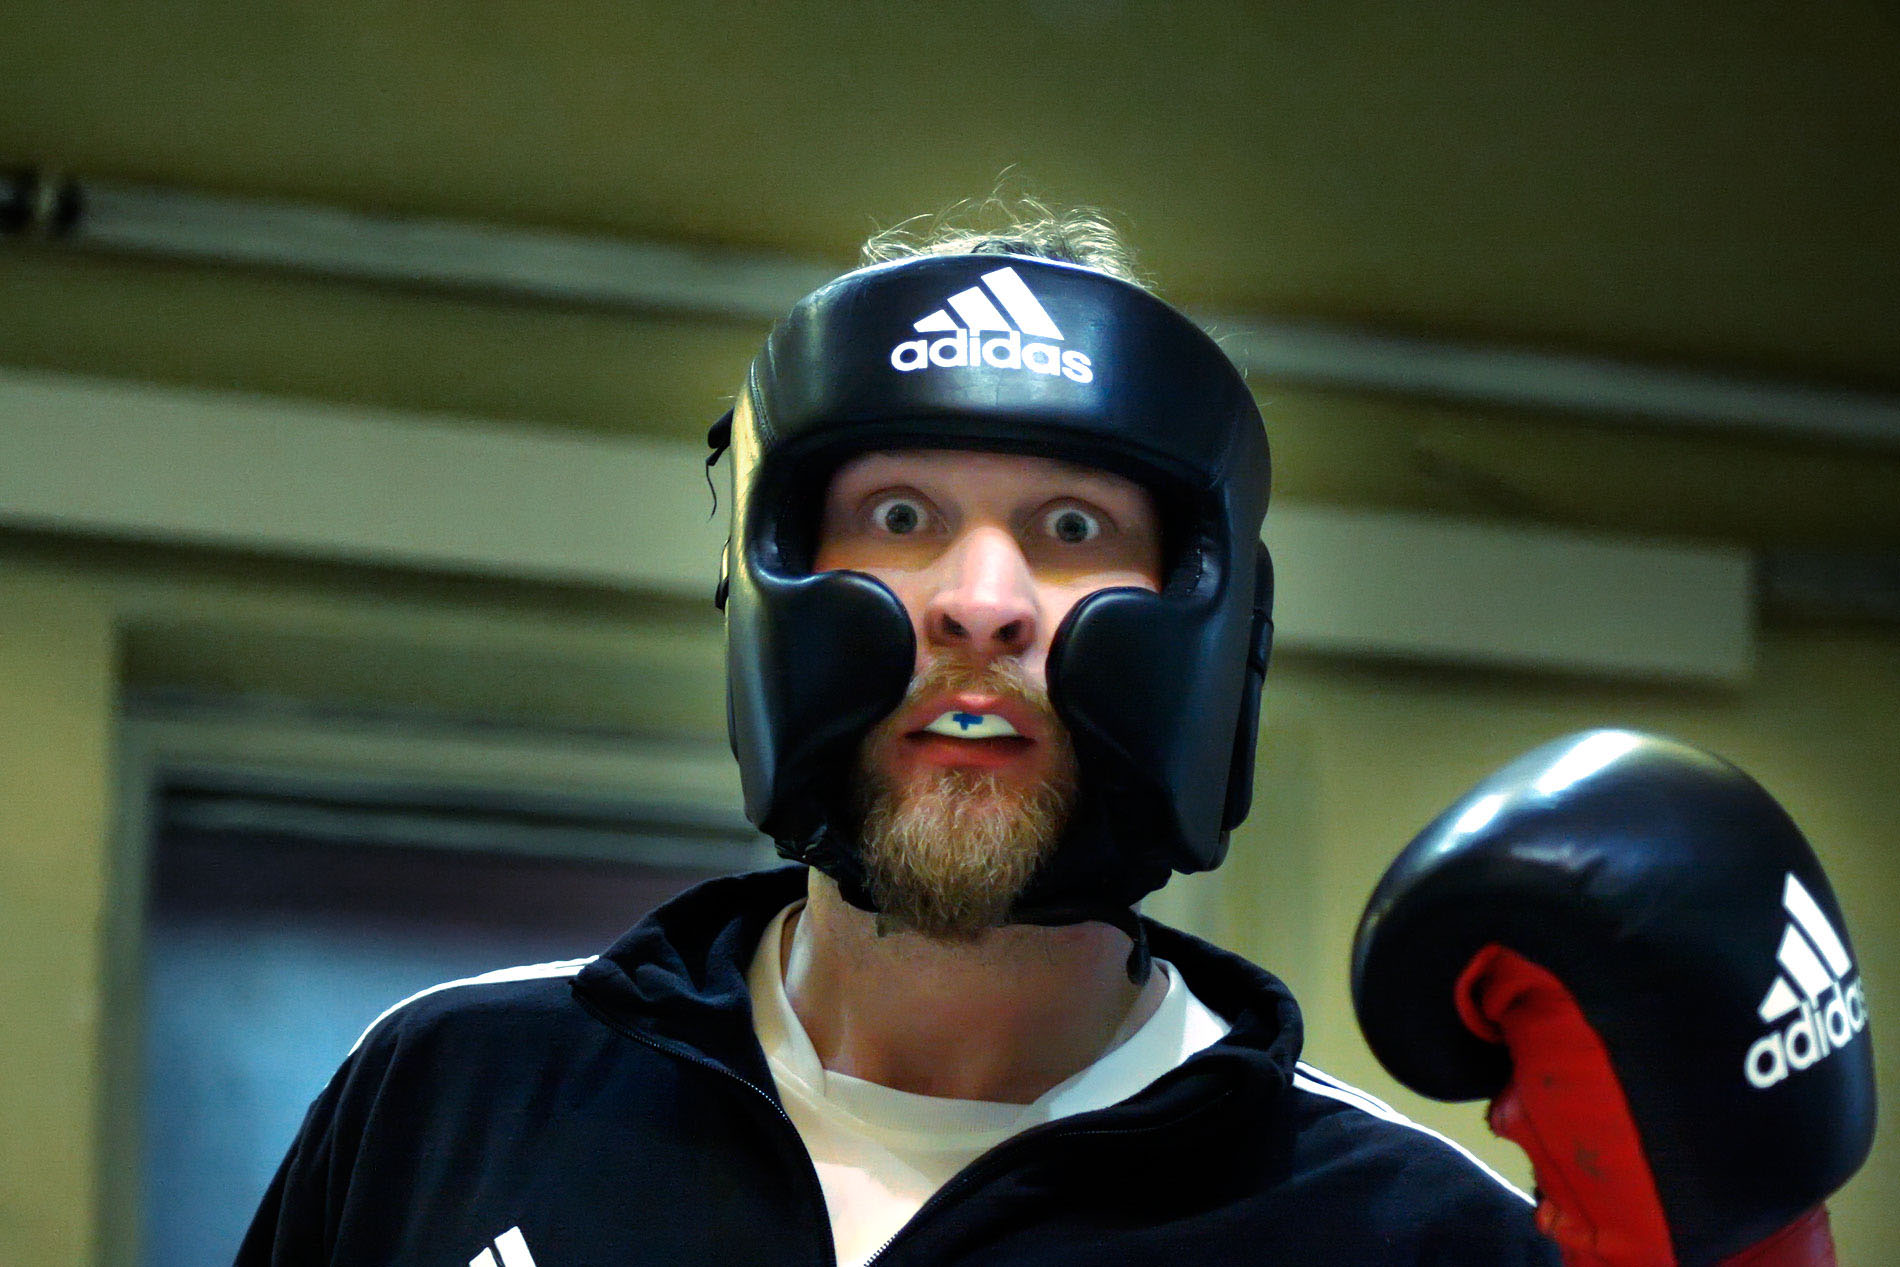 The Rise of Robert Helenius and Why He Hates The Finnish Attitude